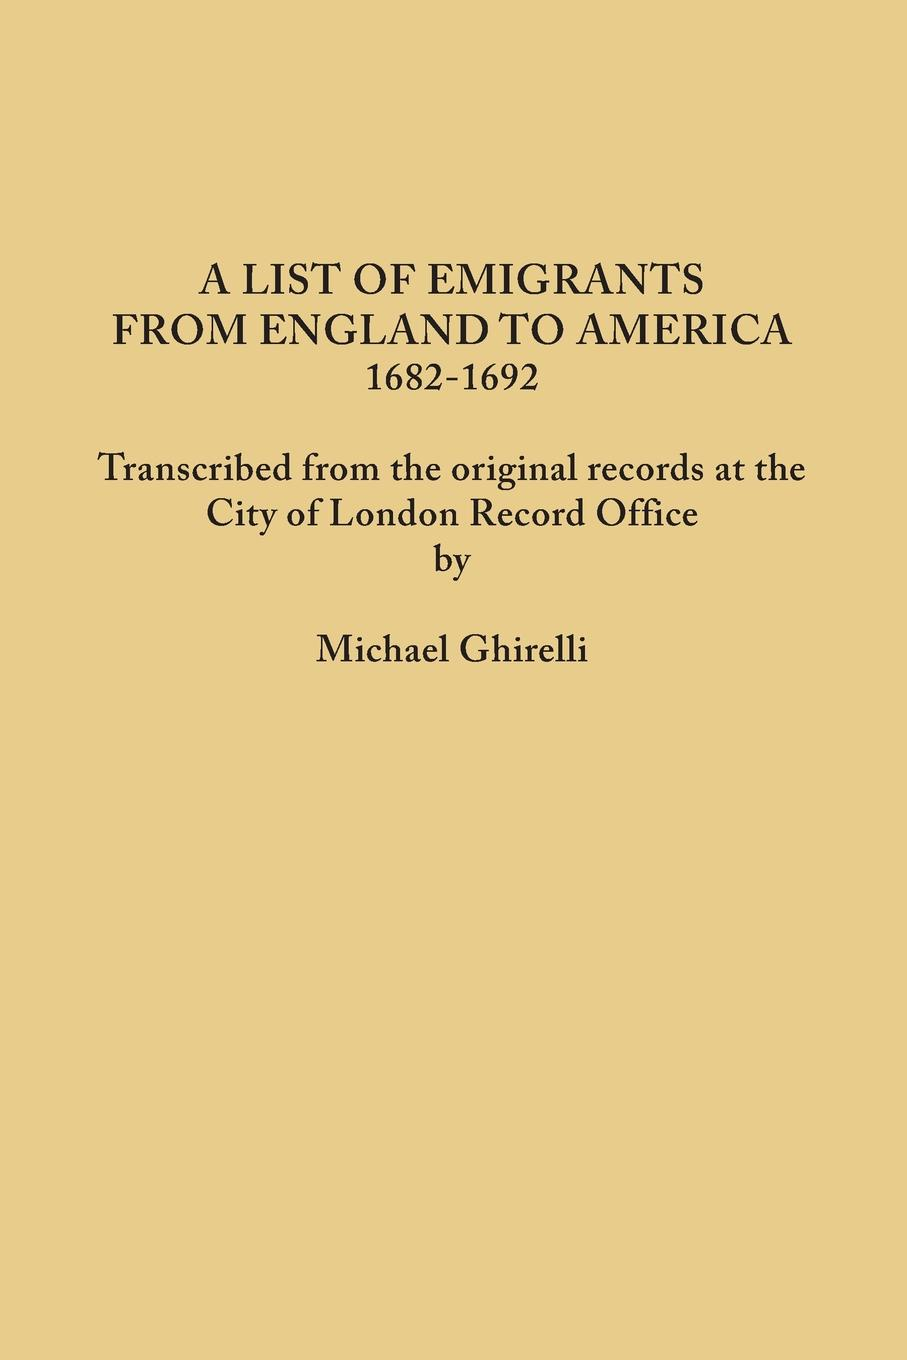 Фото - A List of Emigrants from England to America, 1682-1692. Transcribed from the original records at the City of London Record Office by courtesy of the Corporation of London the quireboys london